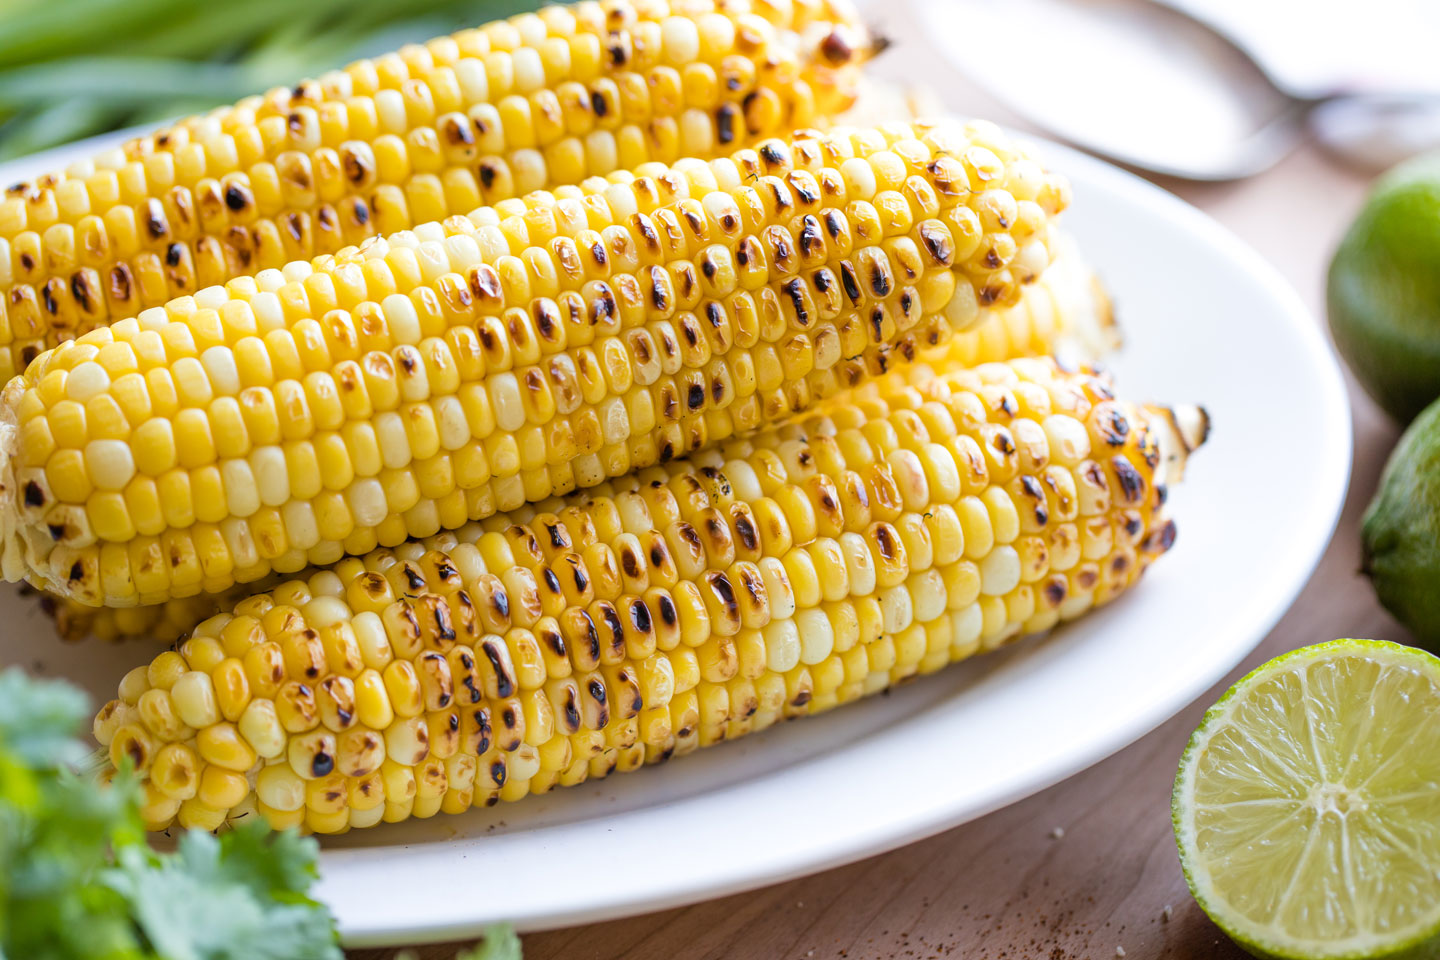 Closeup of several ears of grilled corn with sear marks, piled on a platter after cooking.